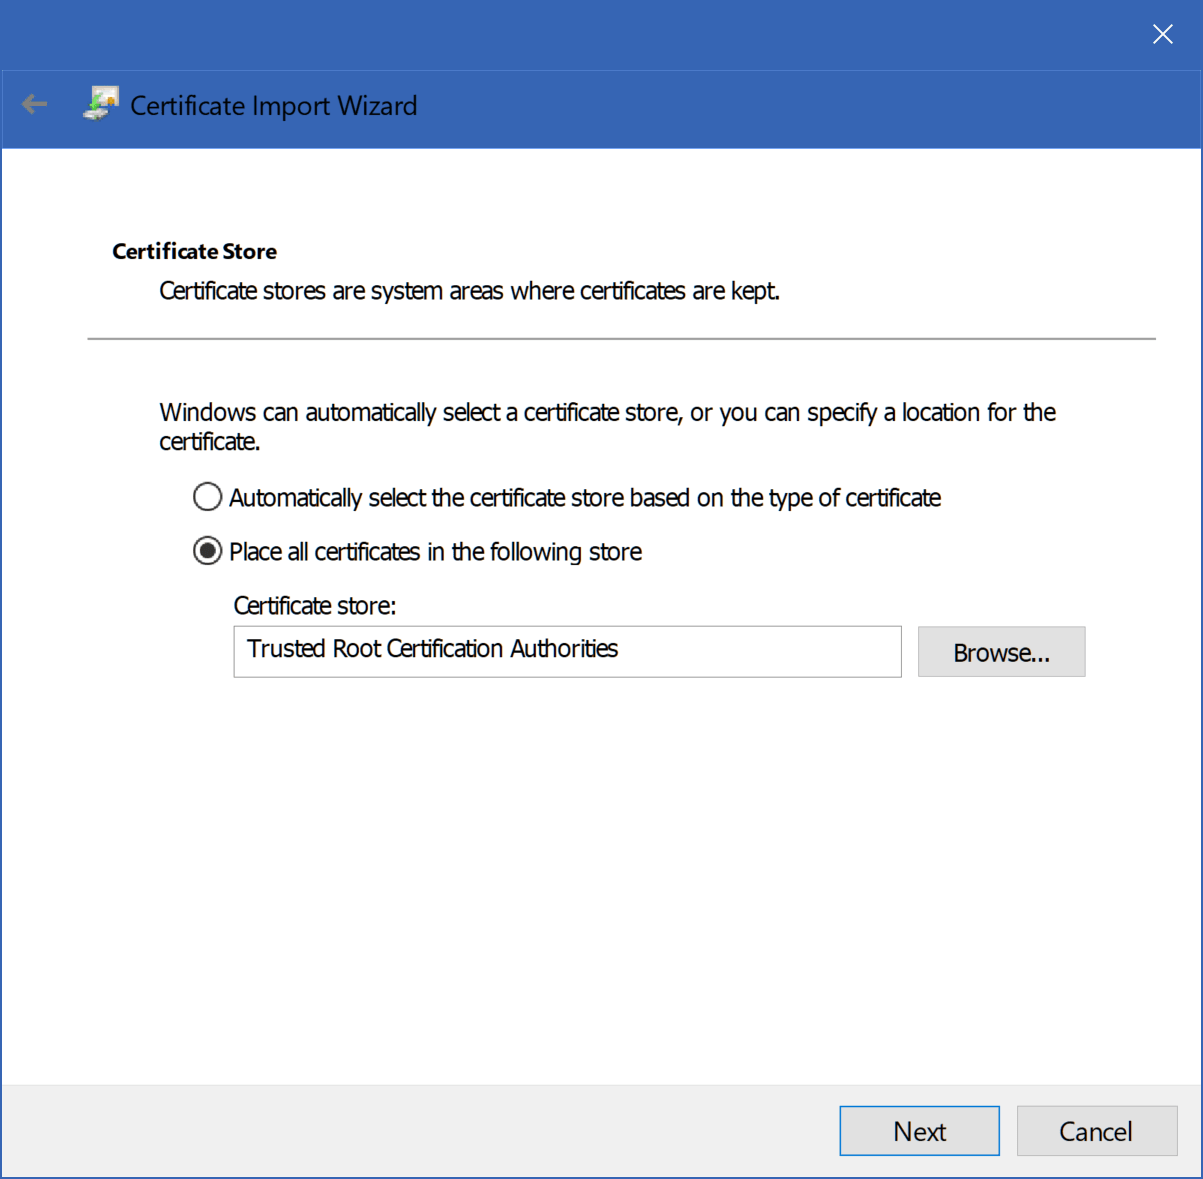 Windows 10 Certificate Import Wizard - place the certificate in The Trusted Root Certification Authorities store